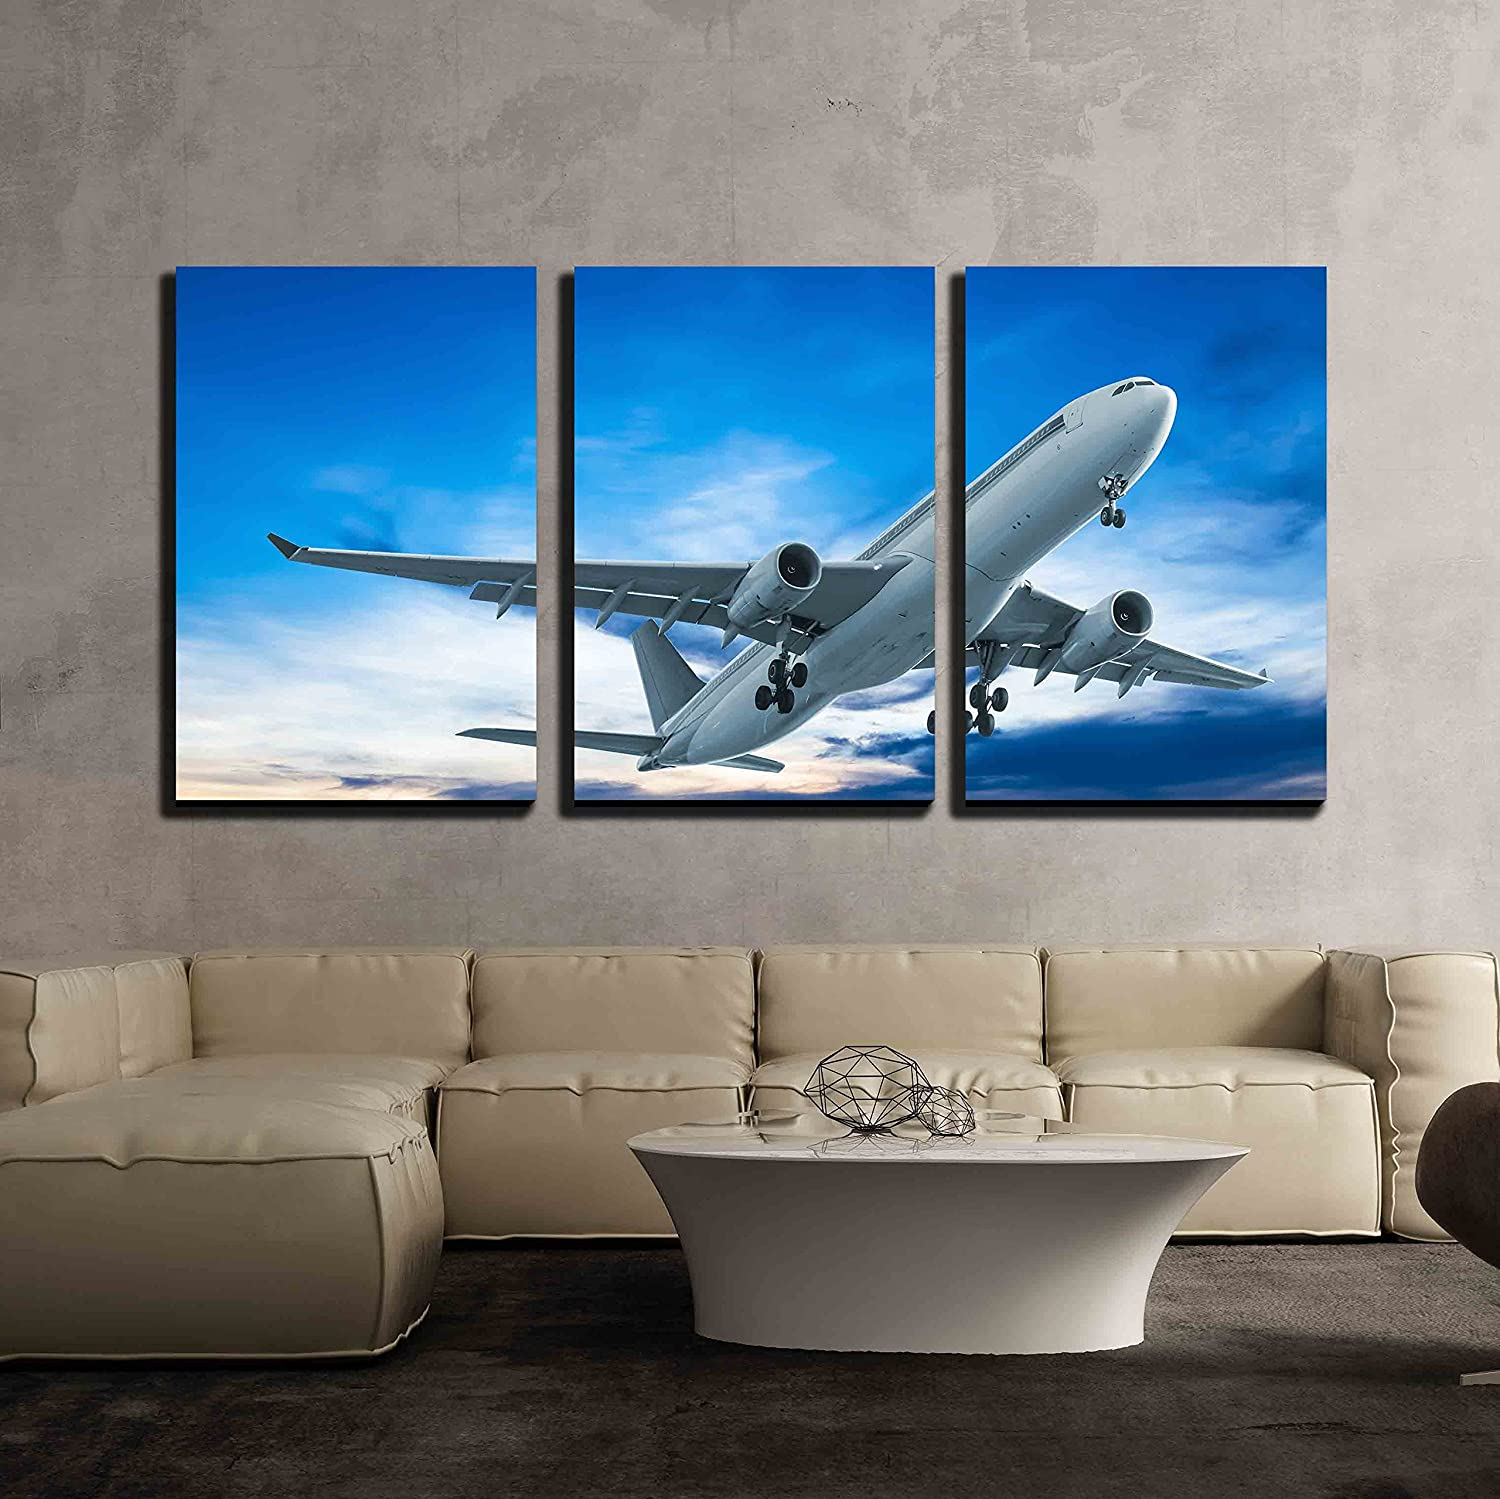 amazon com wall26 3 piece canvas wall art commercial airplane